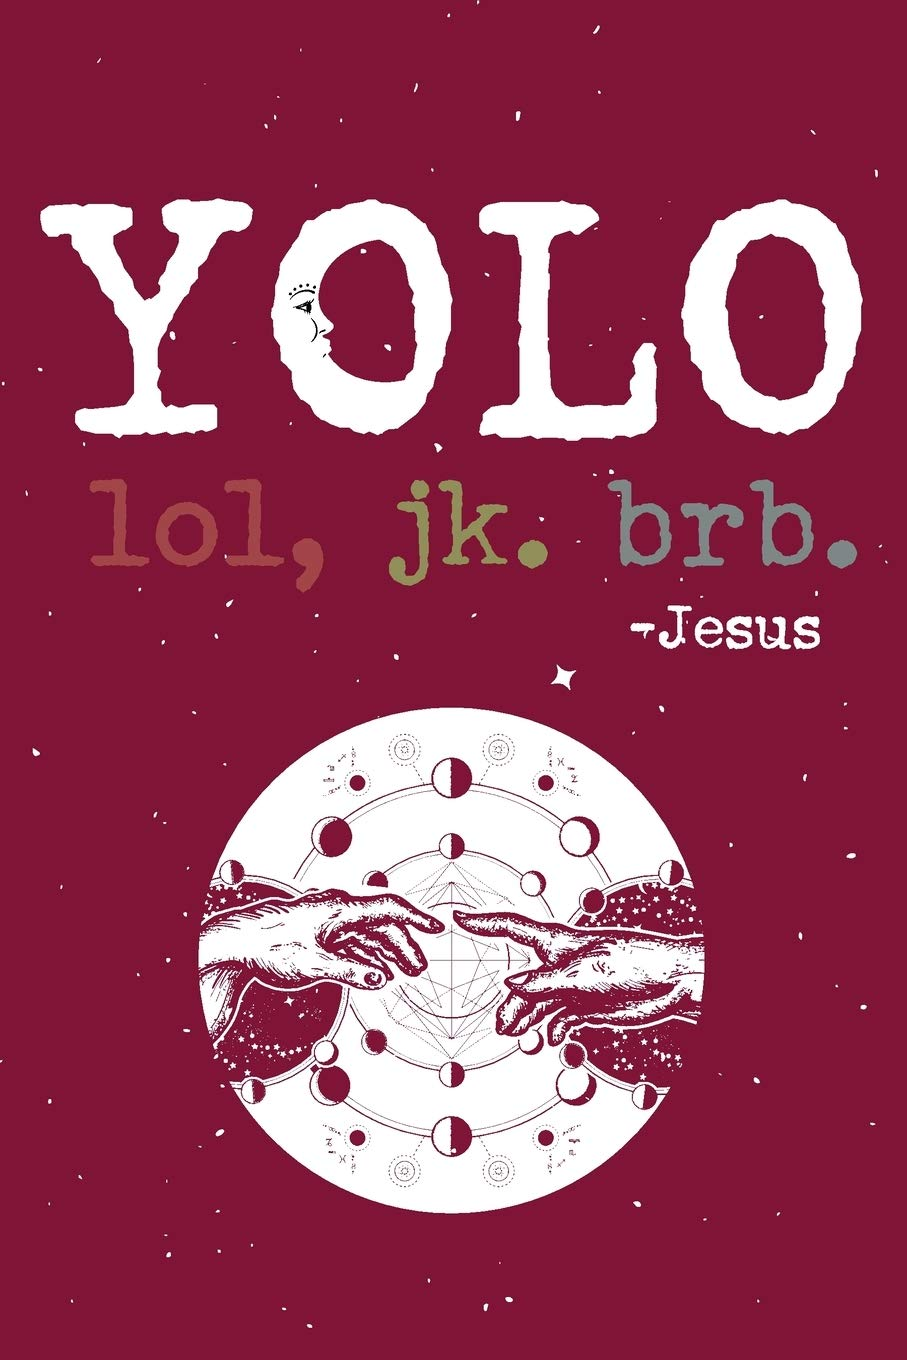 Yolo Lol Jk Brb Jesus Funny Jesus Quotes Prayer Journal Yolo Lol Jk Brb Jesus Jesus Calling Journal Gratitude And Reminder For Men And Women 100 Page Small 6 X